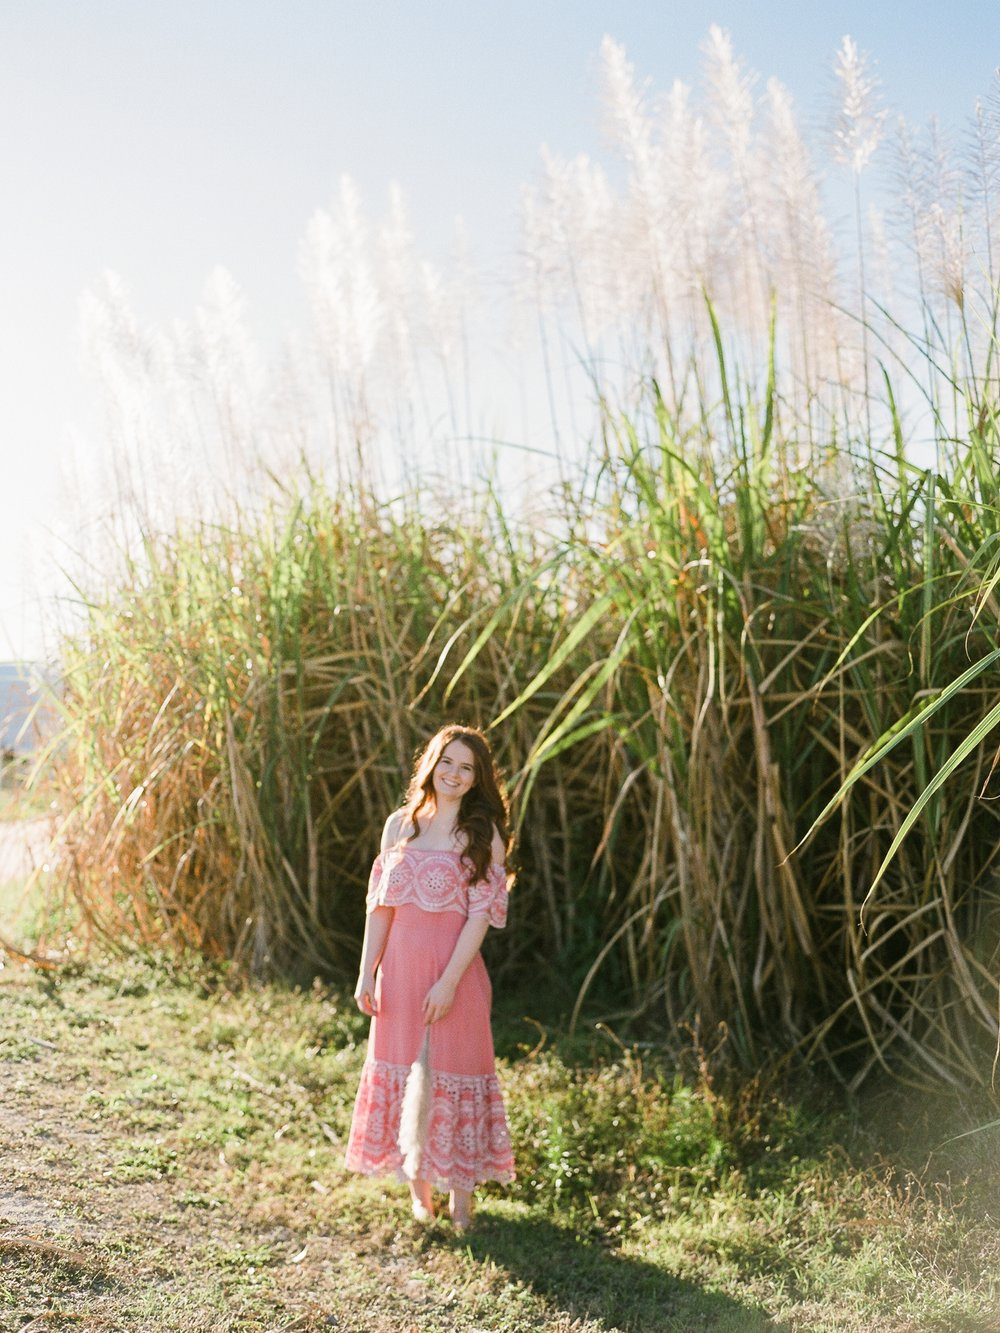 Sugarcane Inspired Shoot 8.jpg